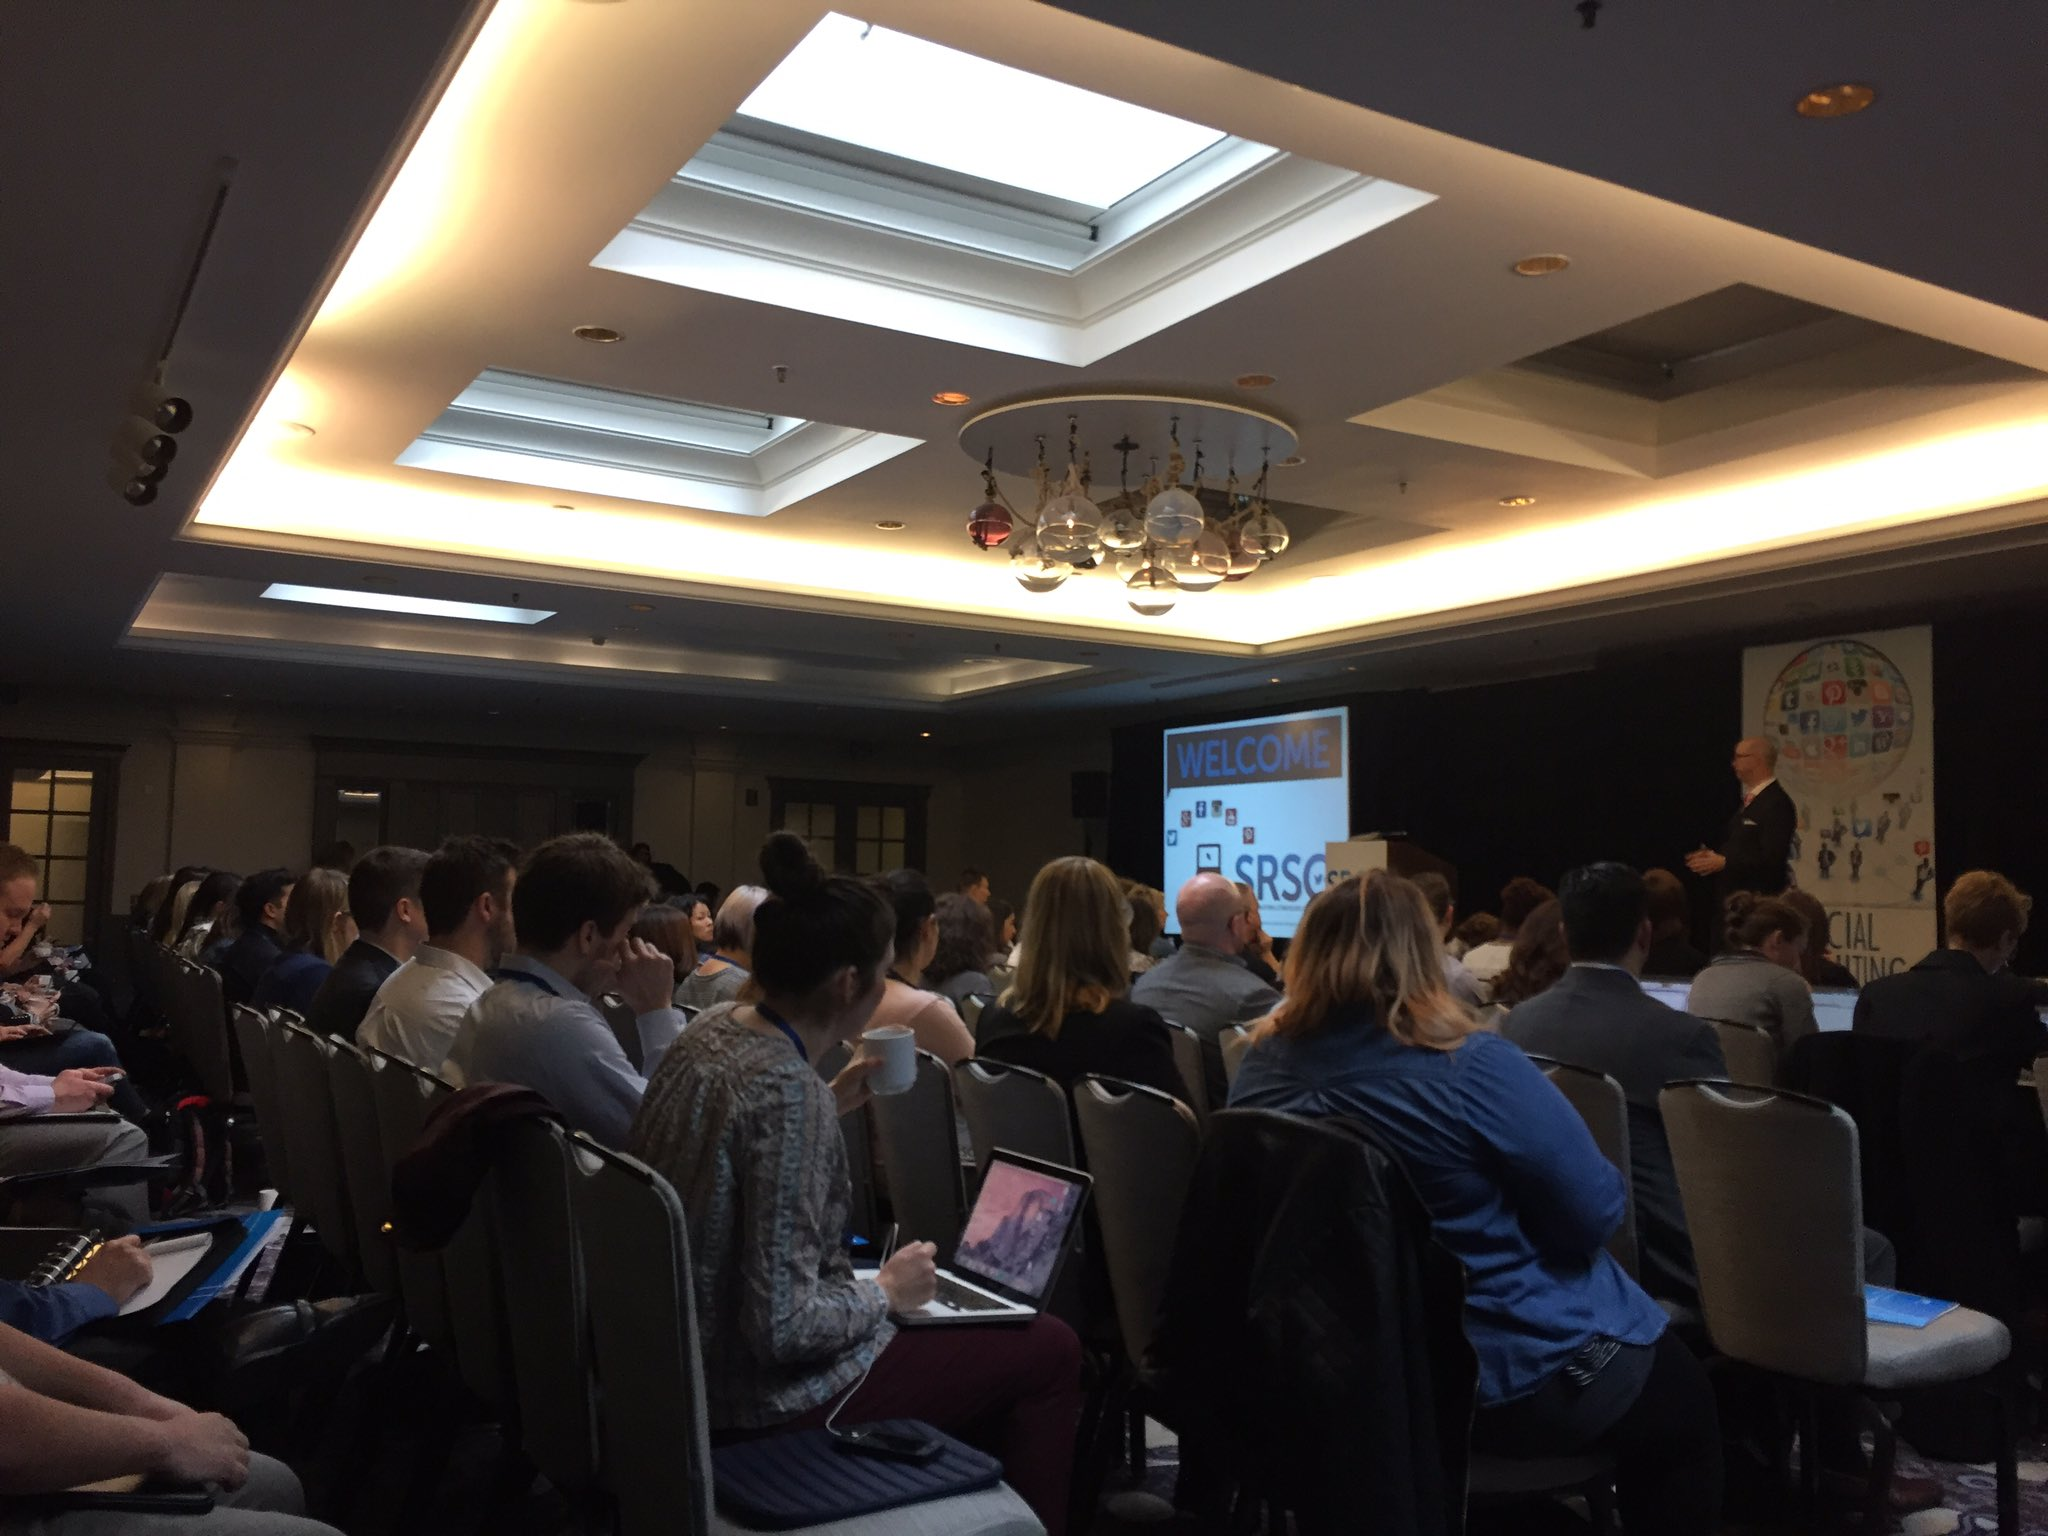 Packed house at #SRSC! Looking forward to great content about improving employer branding and new social #recruiting strategies. https://t.co/ShUlK1Q9xS